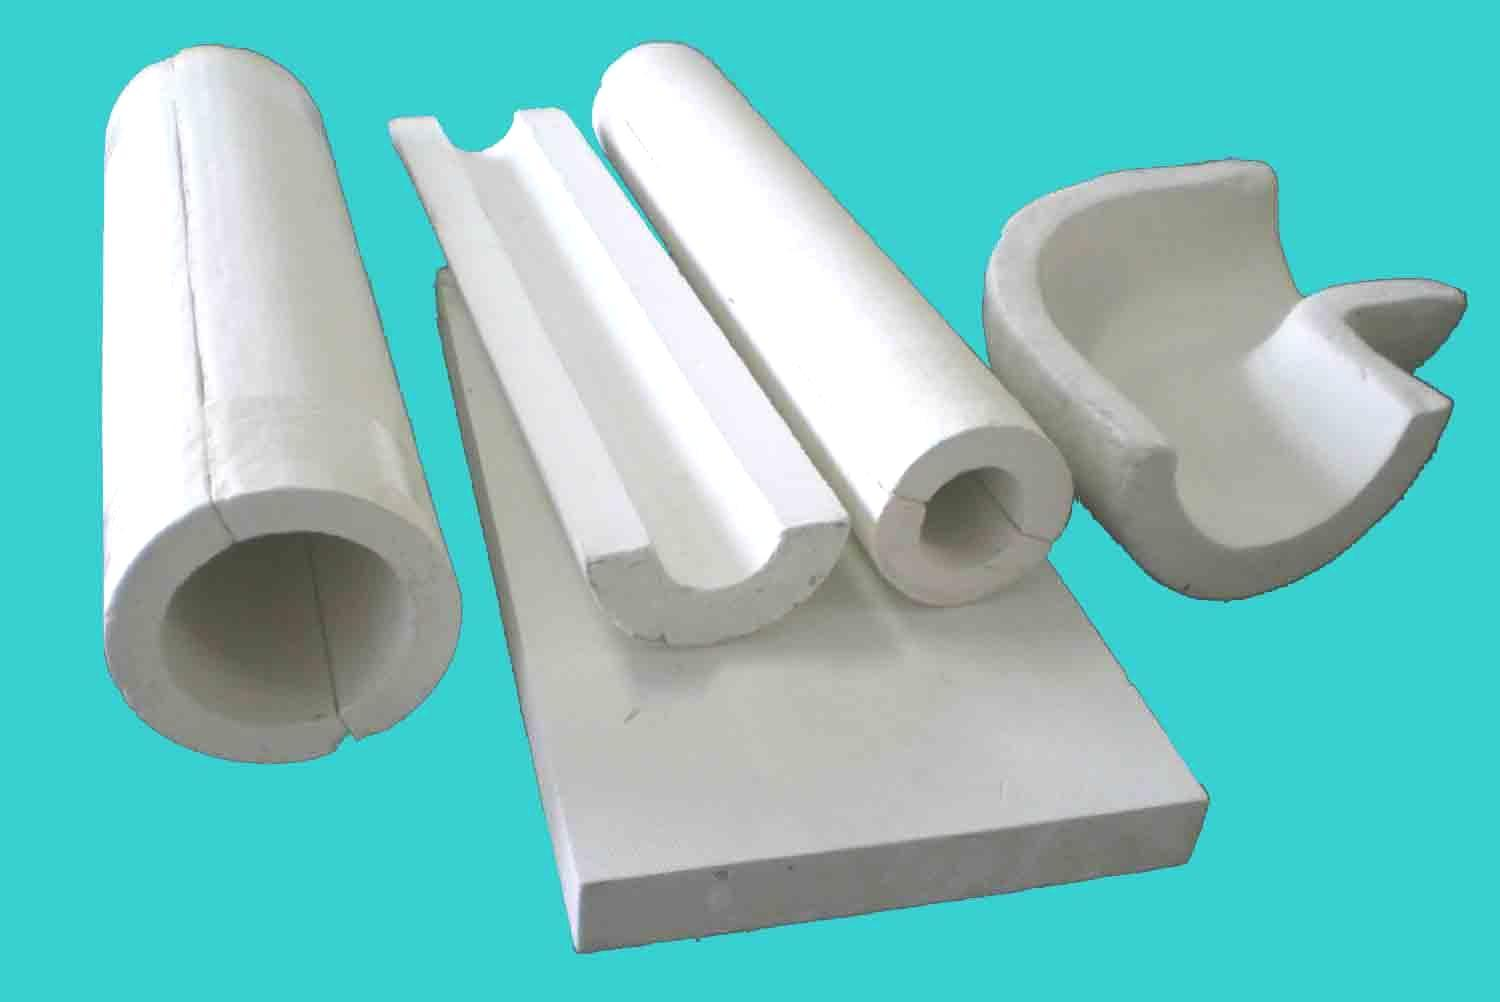 Calcium Silicate Insulation Products - Distribution International